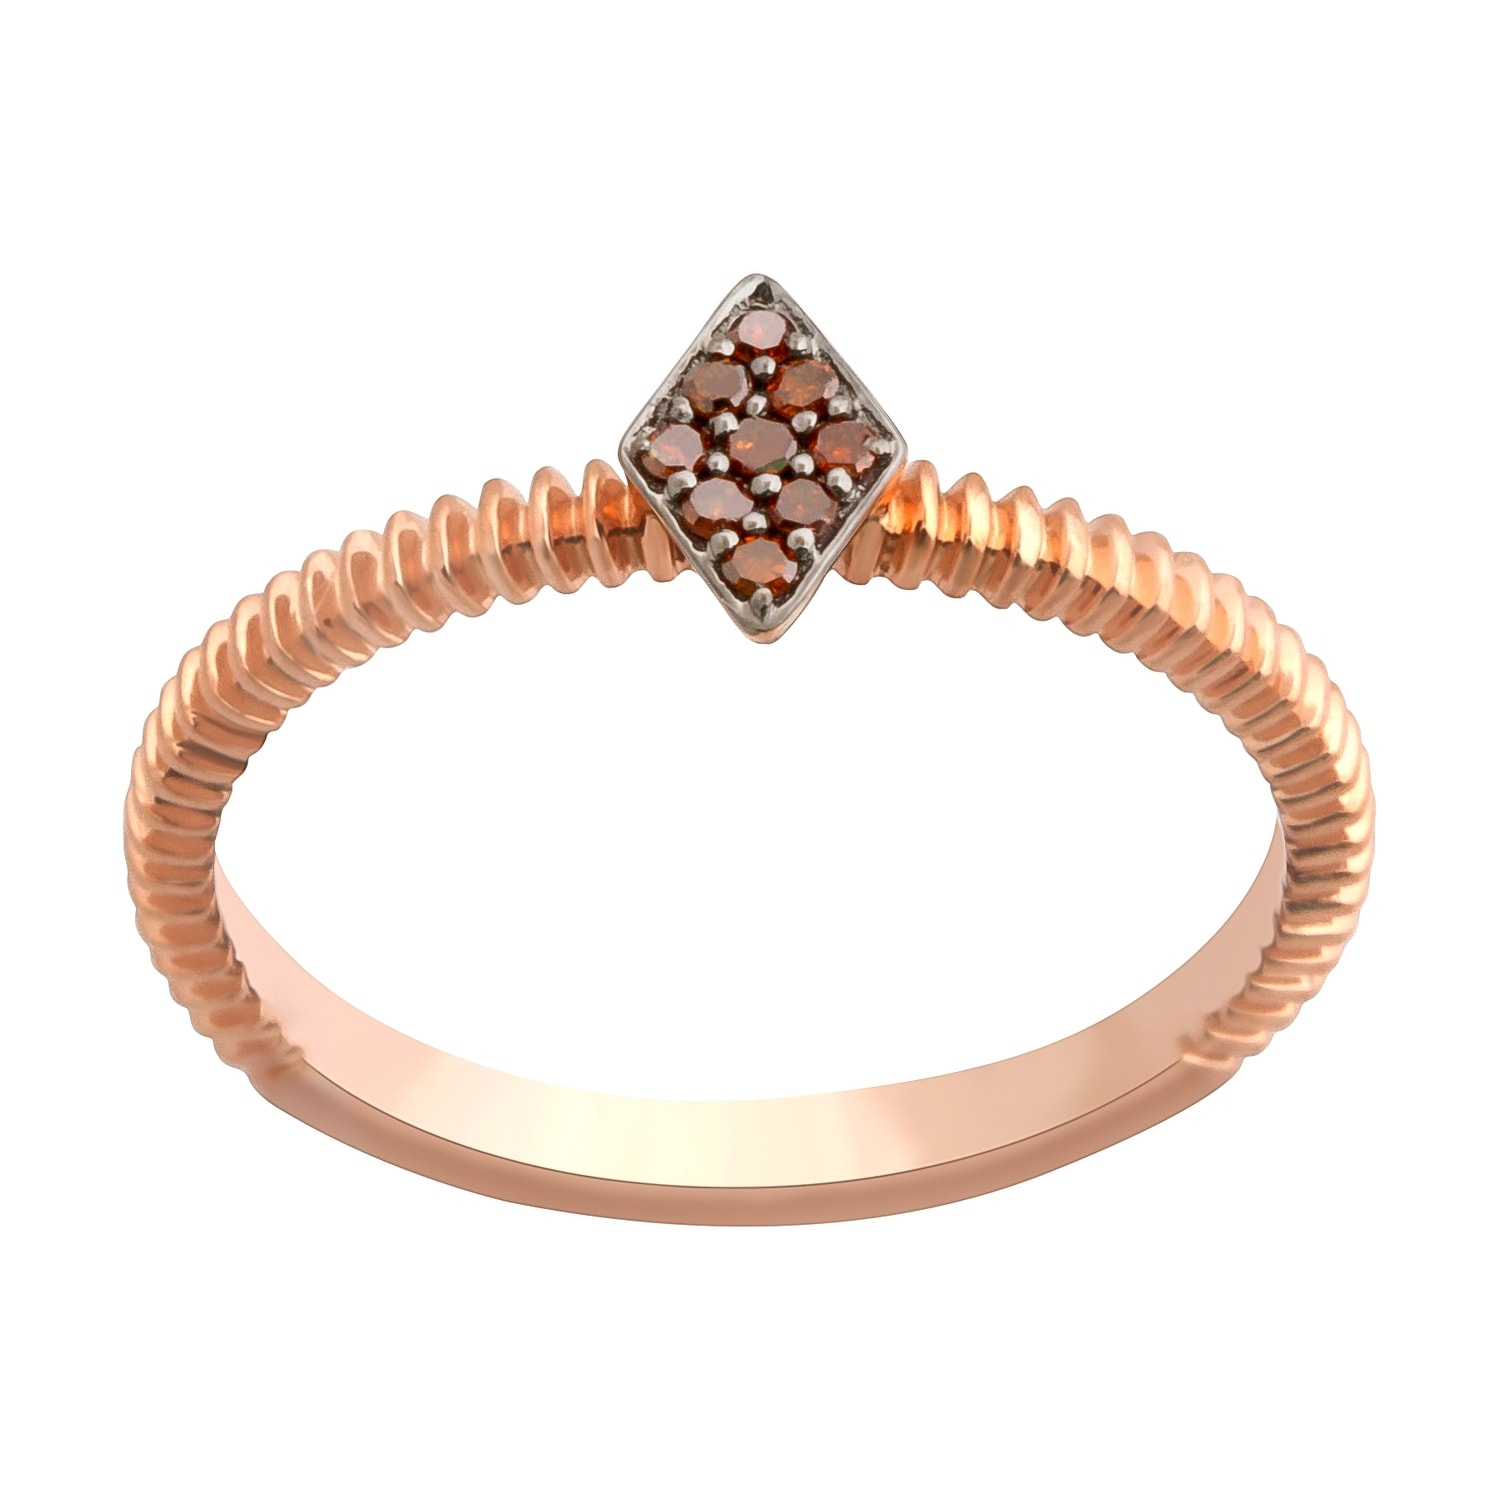 Prism Jewel 0.06Ct Round Cognac Diamond Stylist Ring - Thumbnail 0